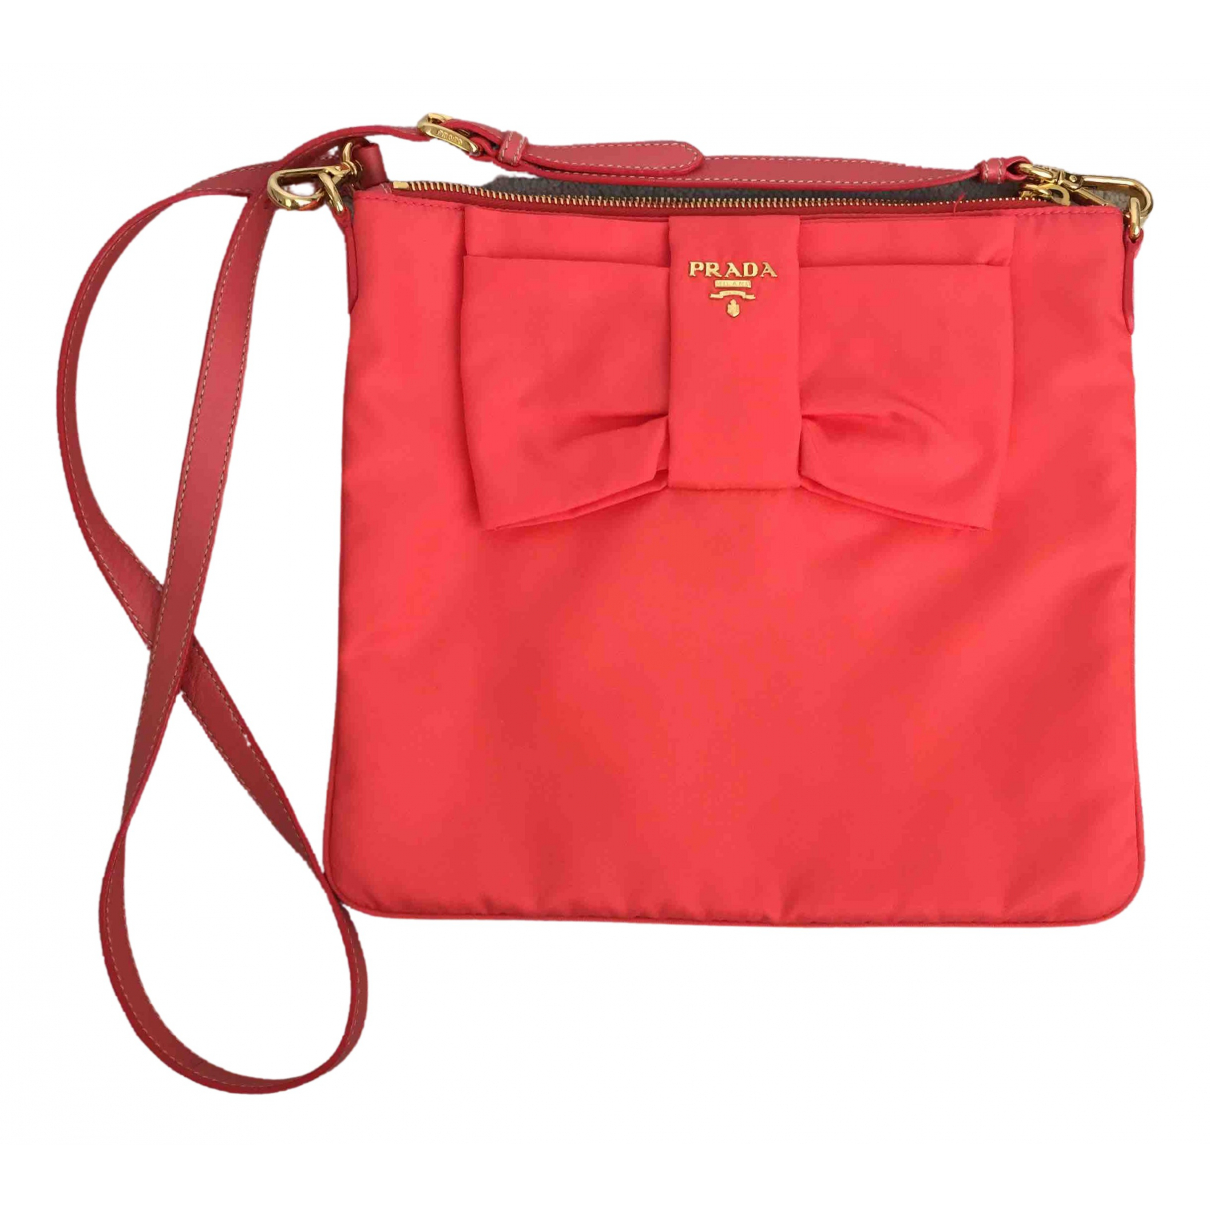 Prada \N Orange Cloth handbag for Women \N